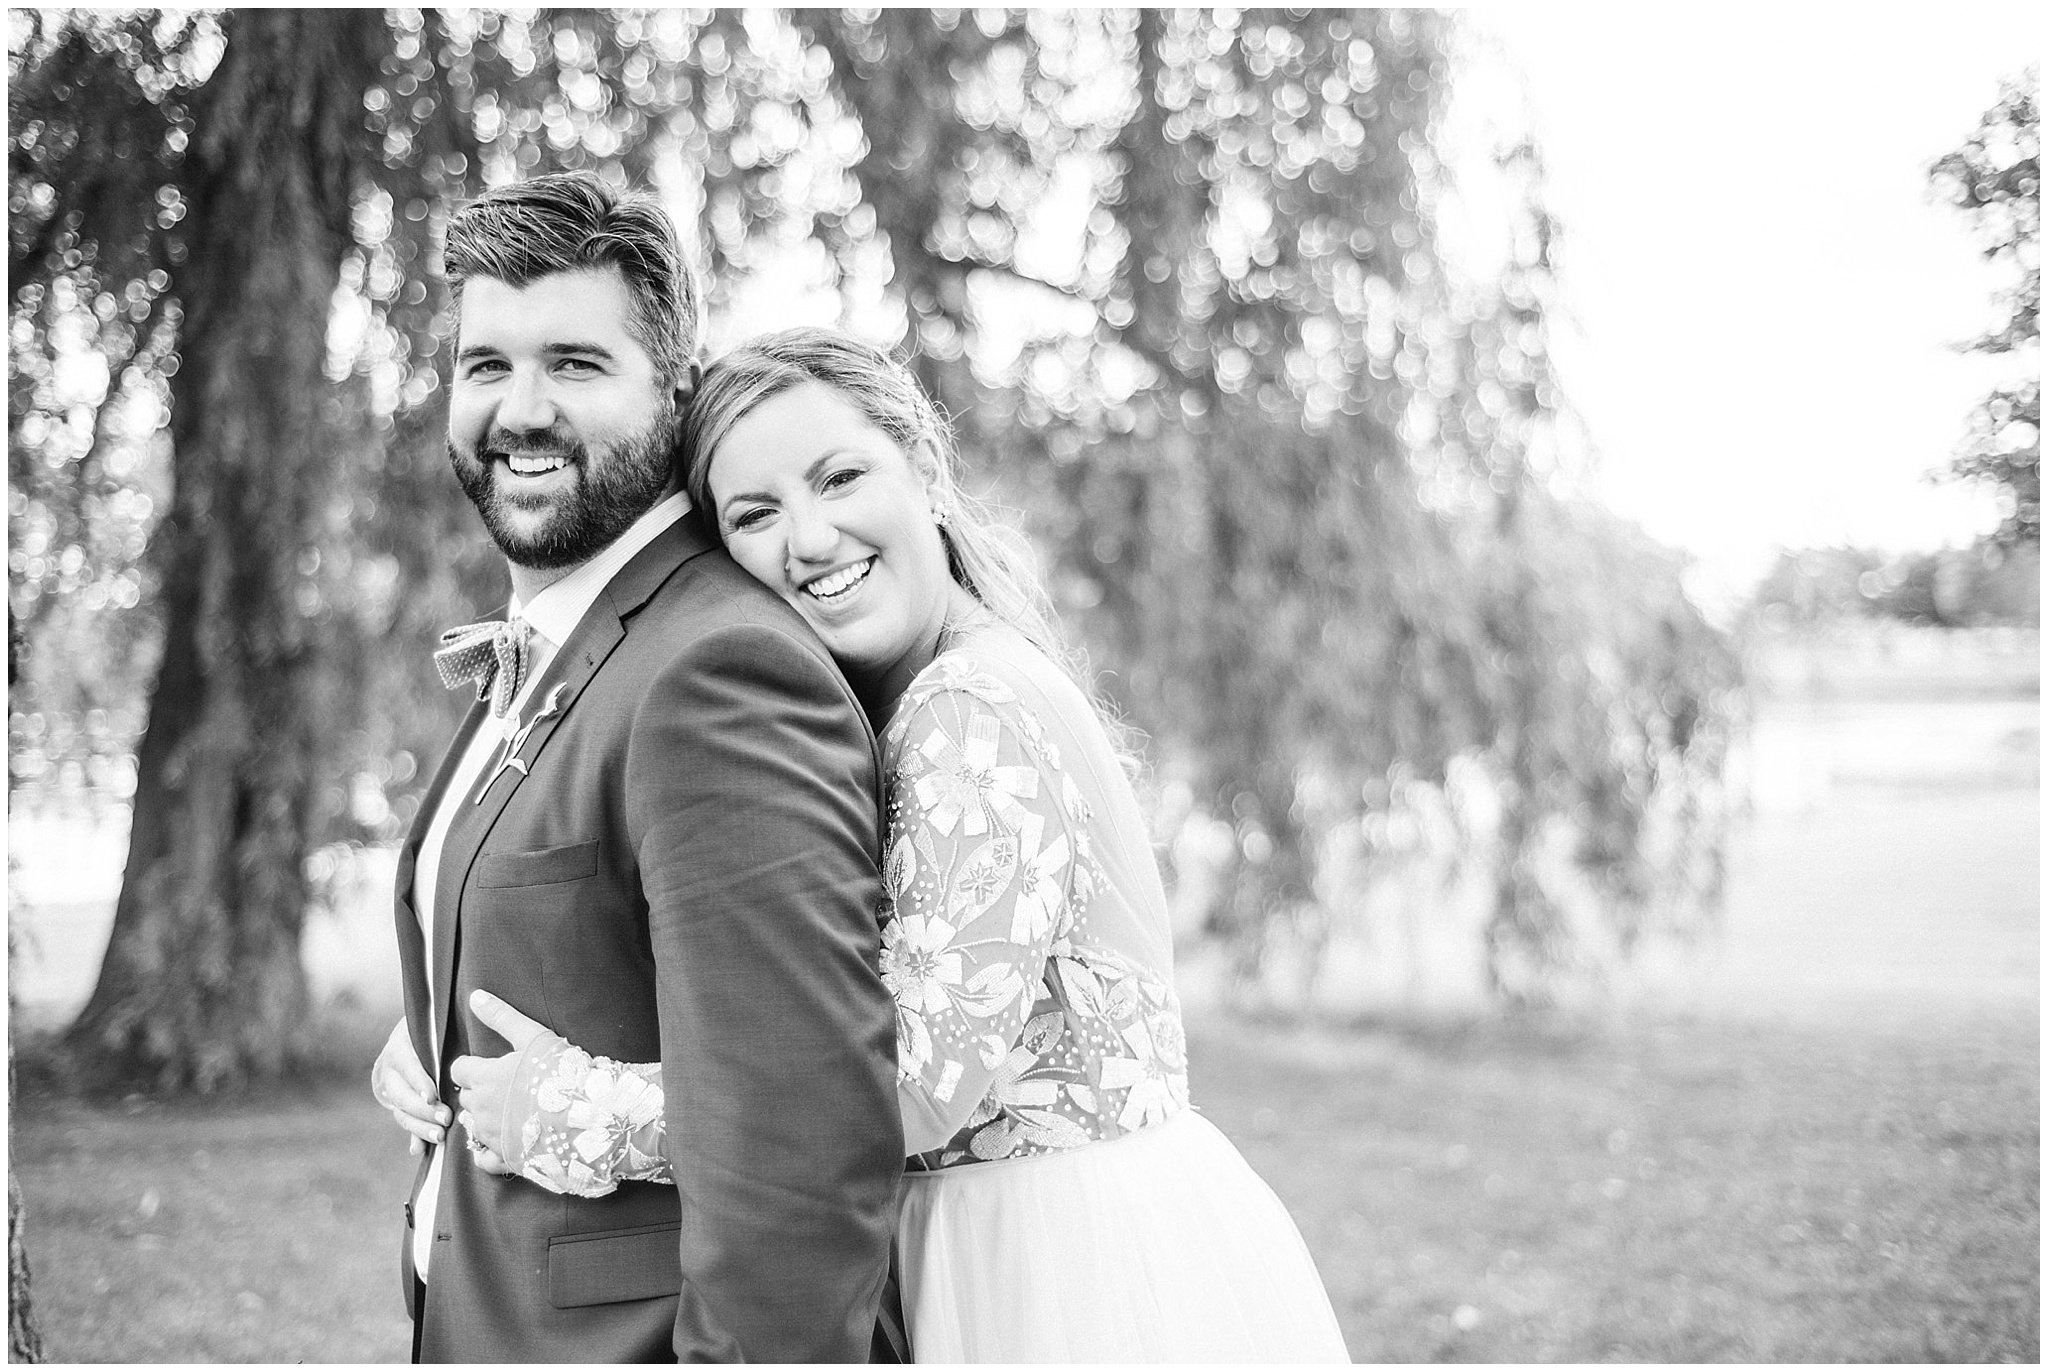 Bride and groom portraits at Tralee Wedding Facility, photographed by Jenn Kavanagh Photography